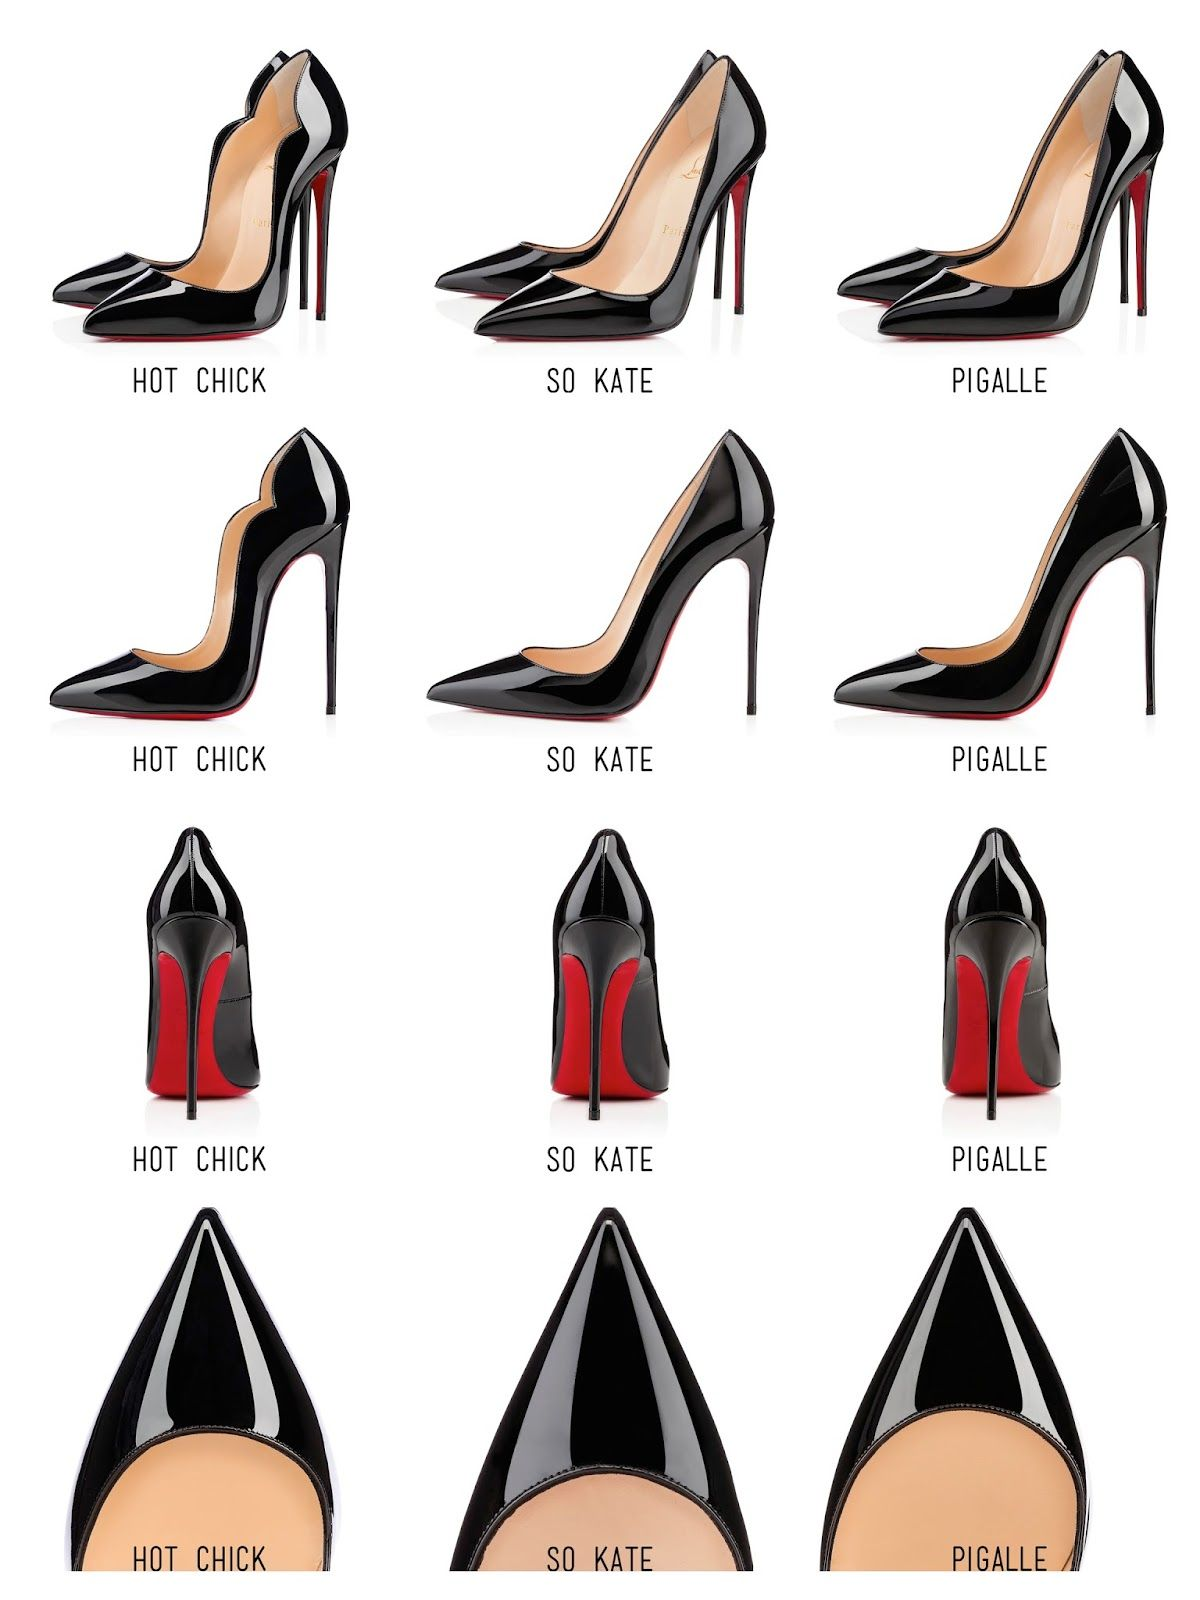 louboutin pigalle and so kate